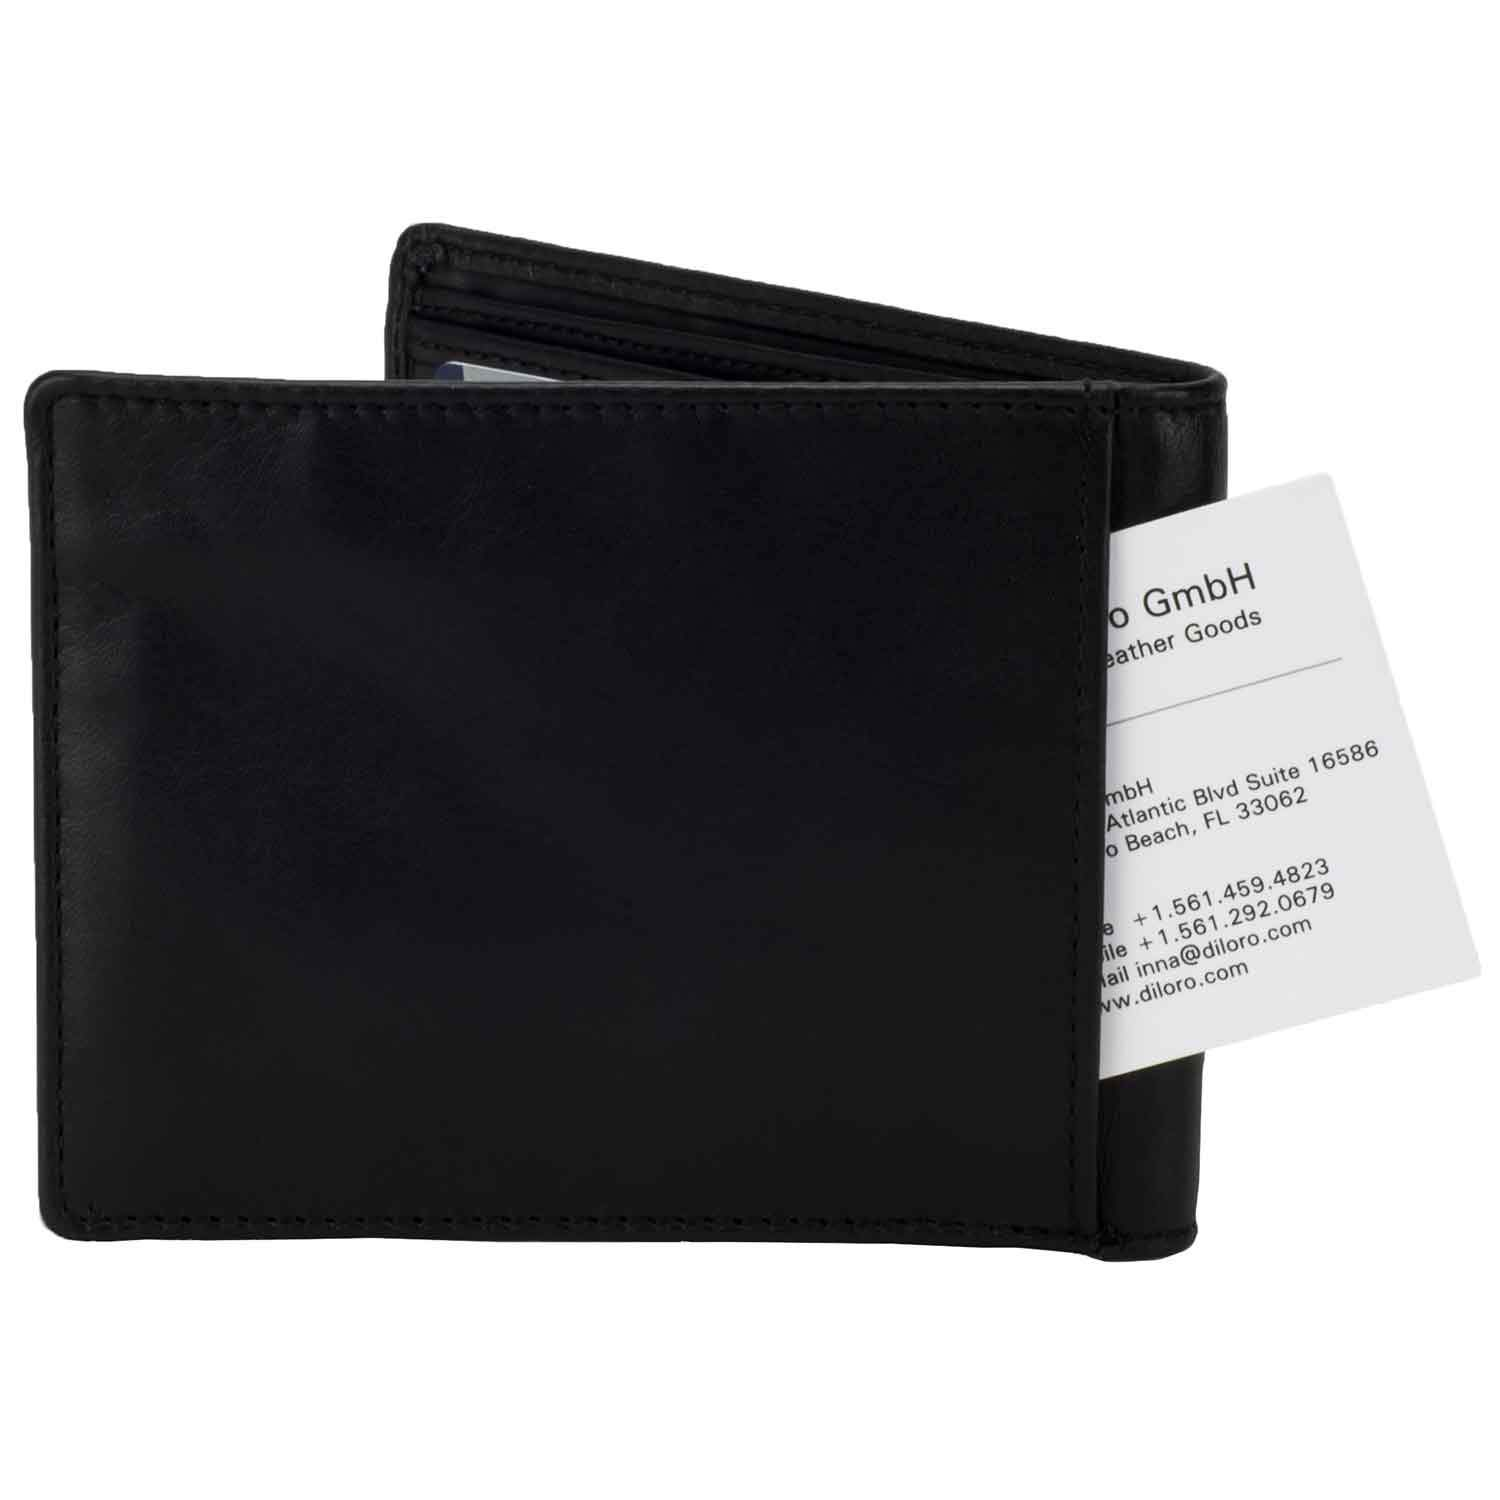 8c79cb657b61 DiLoro Slim Bifold Leather Wallet with Outside Slip Pocket and RFID  Protection - back view